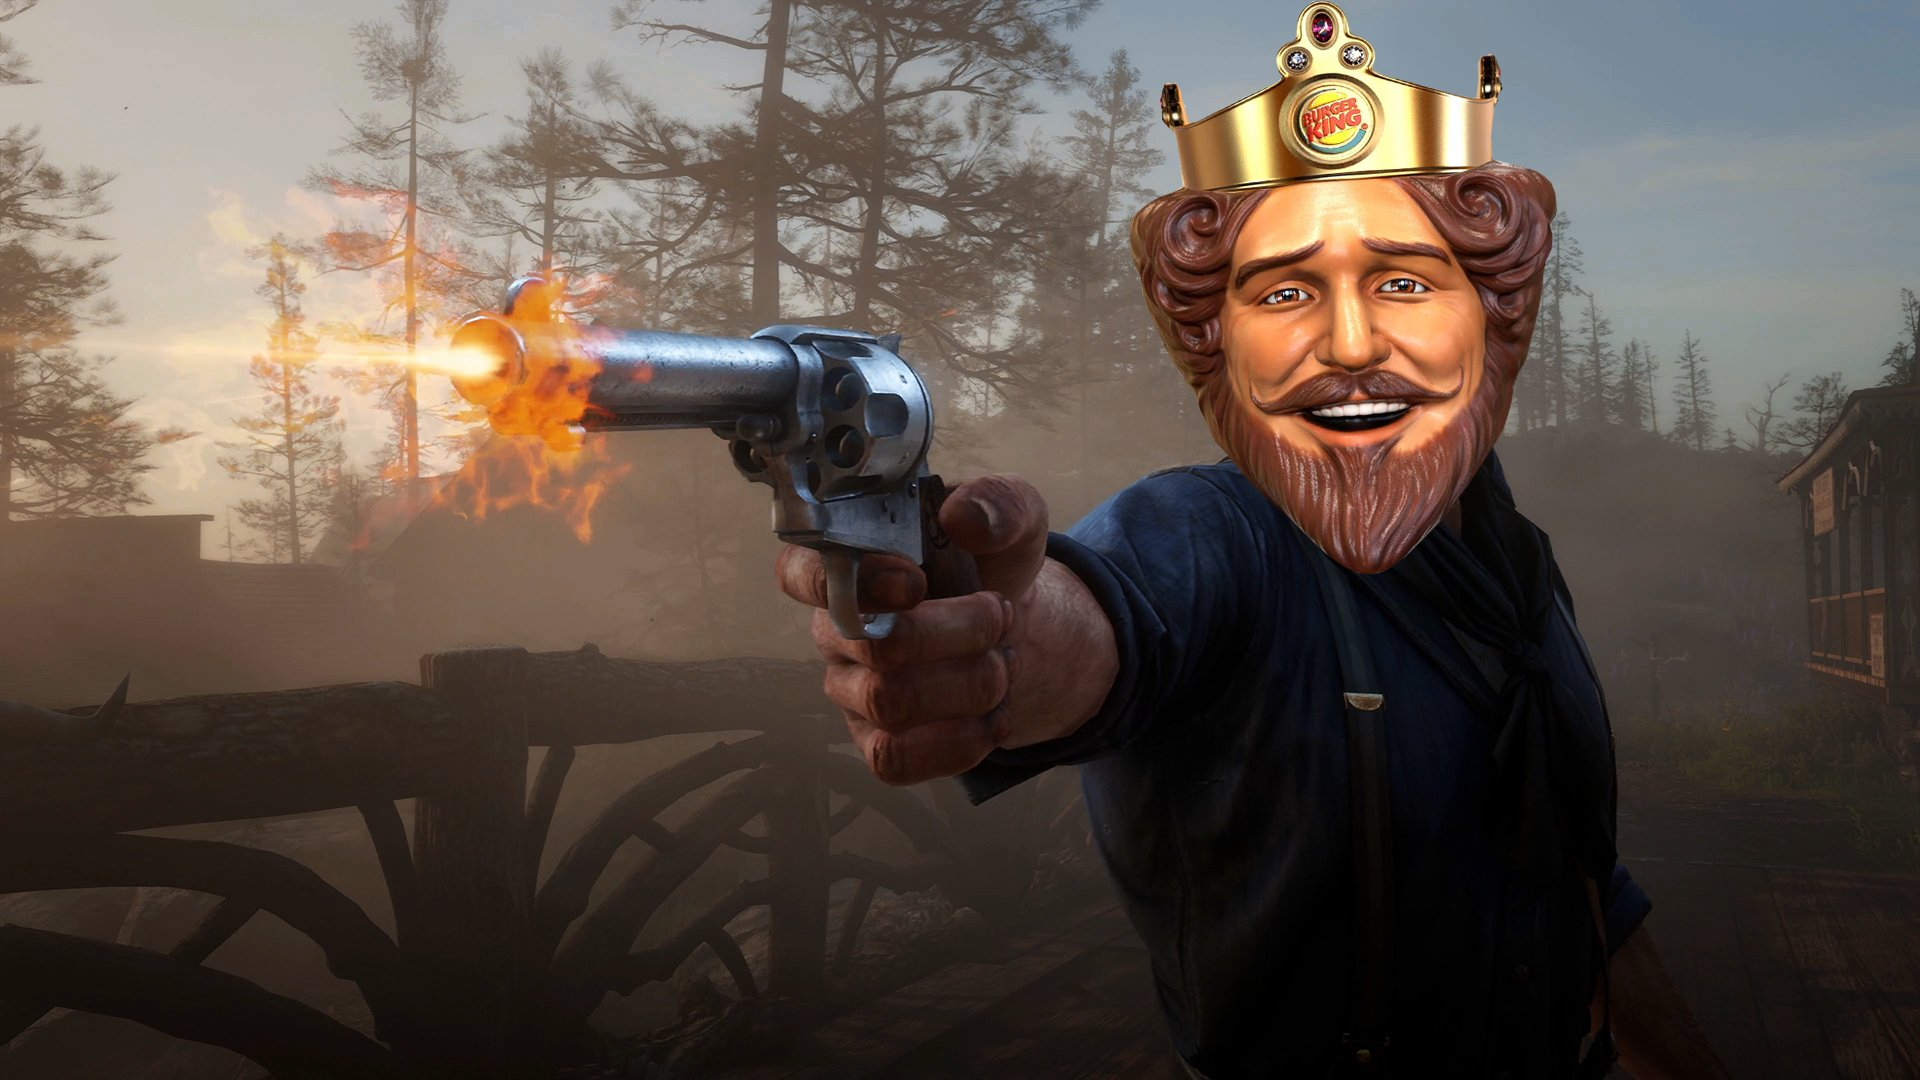 Burger King Sweden 'adds' Whopper crafting to Red Dead Redemption 2 screenshot